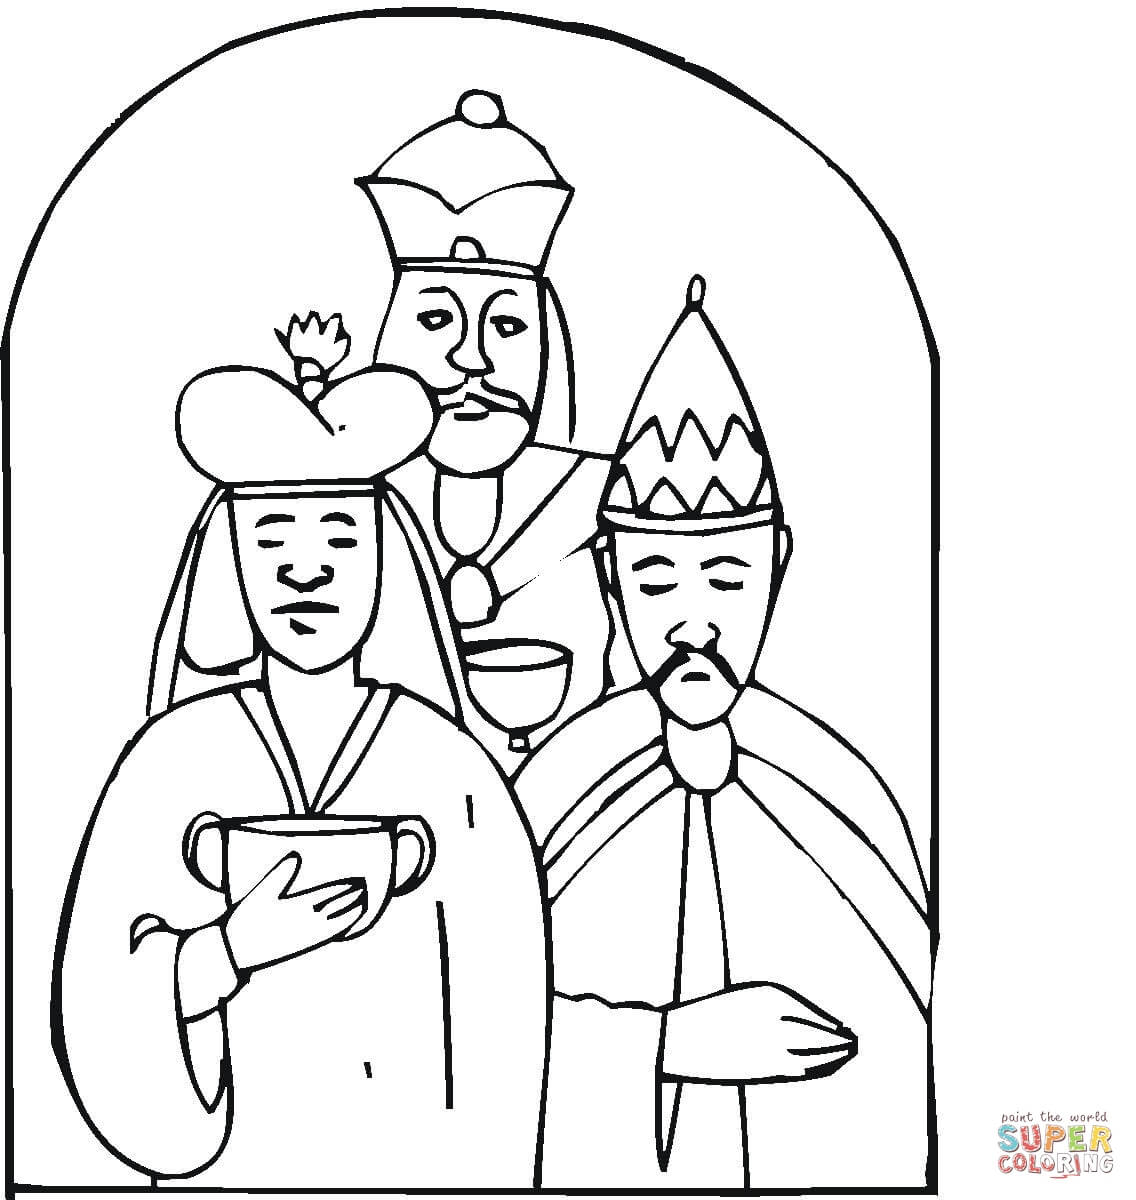 Wise Men Came With Gifts To Worship Little Jesus coloring